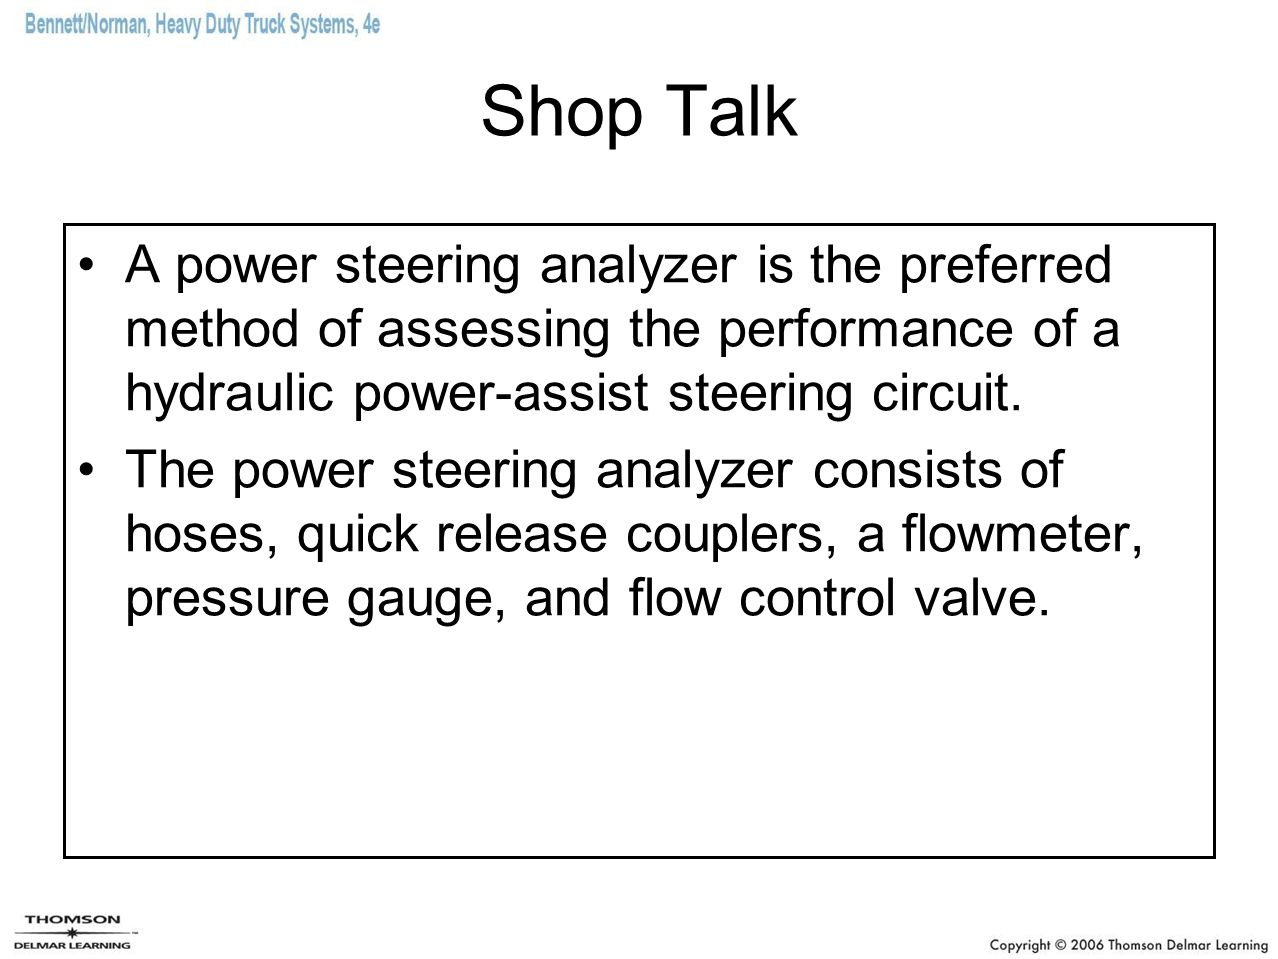 Shop Talk A power steering analyzer is the preferred method of assessing the performance of a hydraulic power-assist steering circuit.